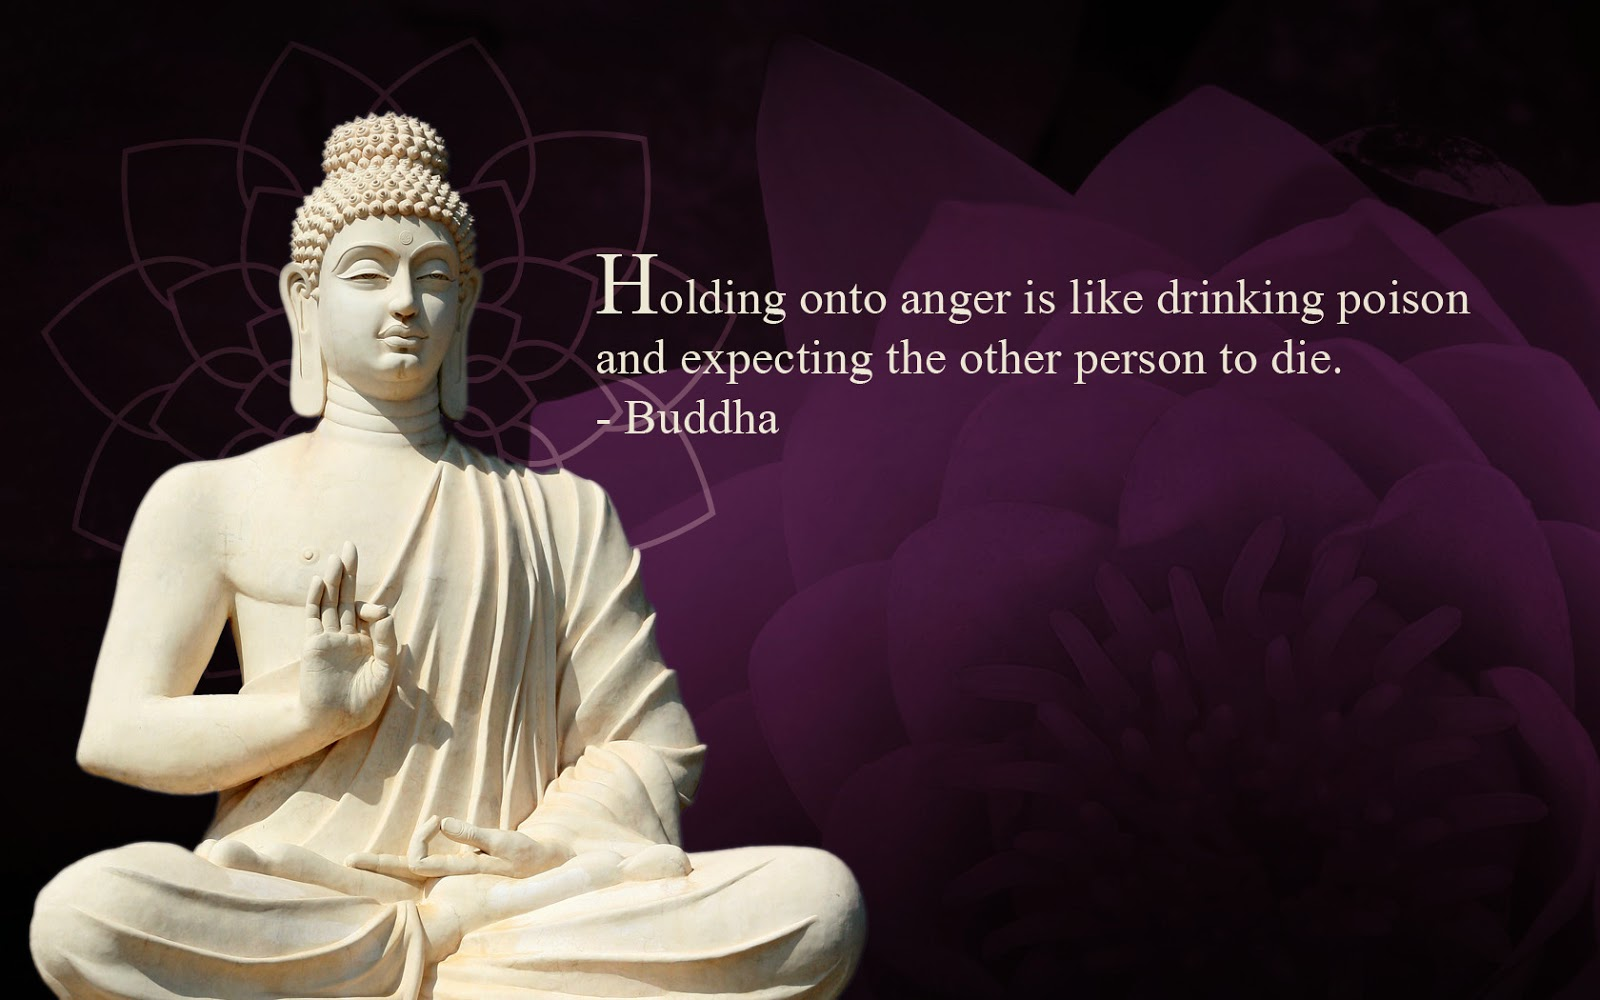 buddha wallpapers with quotes on life and happiness hd pictures for desktop and mobile. Black Bedroom Furniture Sets. Home Design Ideas